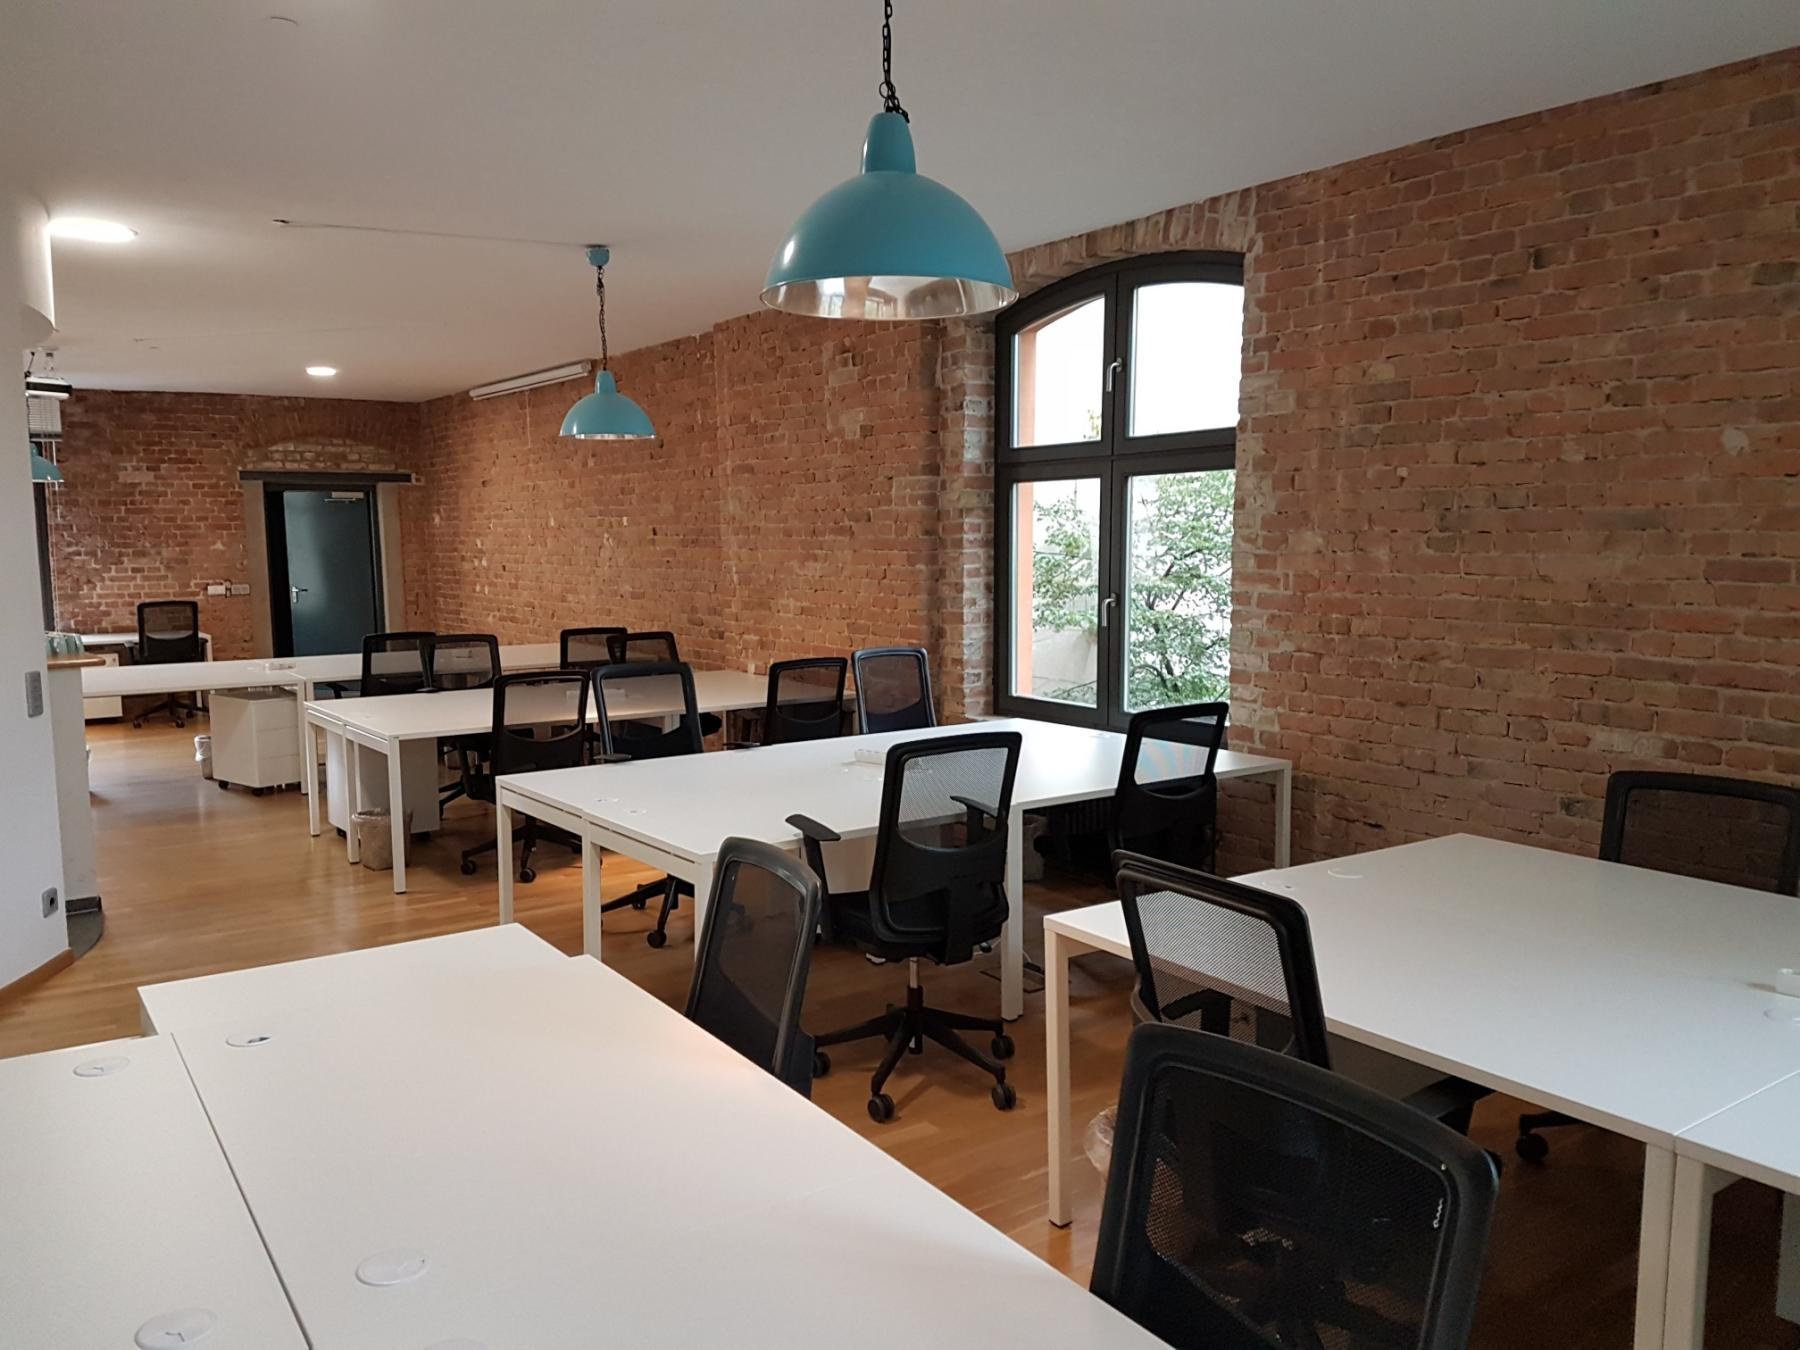 Rent a working place at the Coworking-Space in Berlin-Mitte